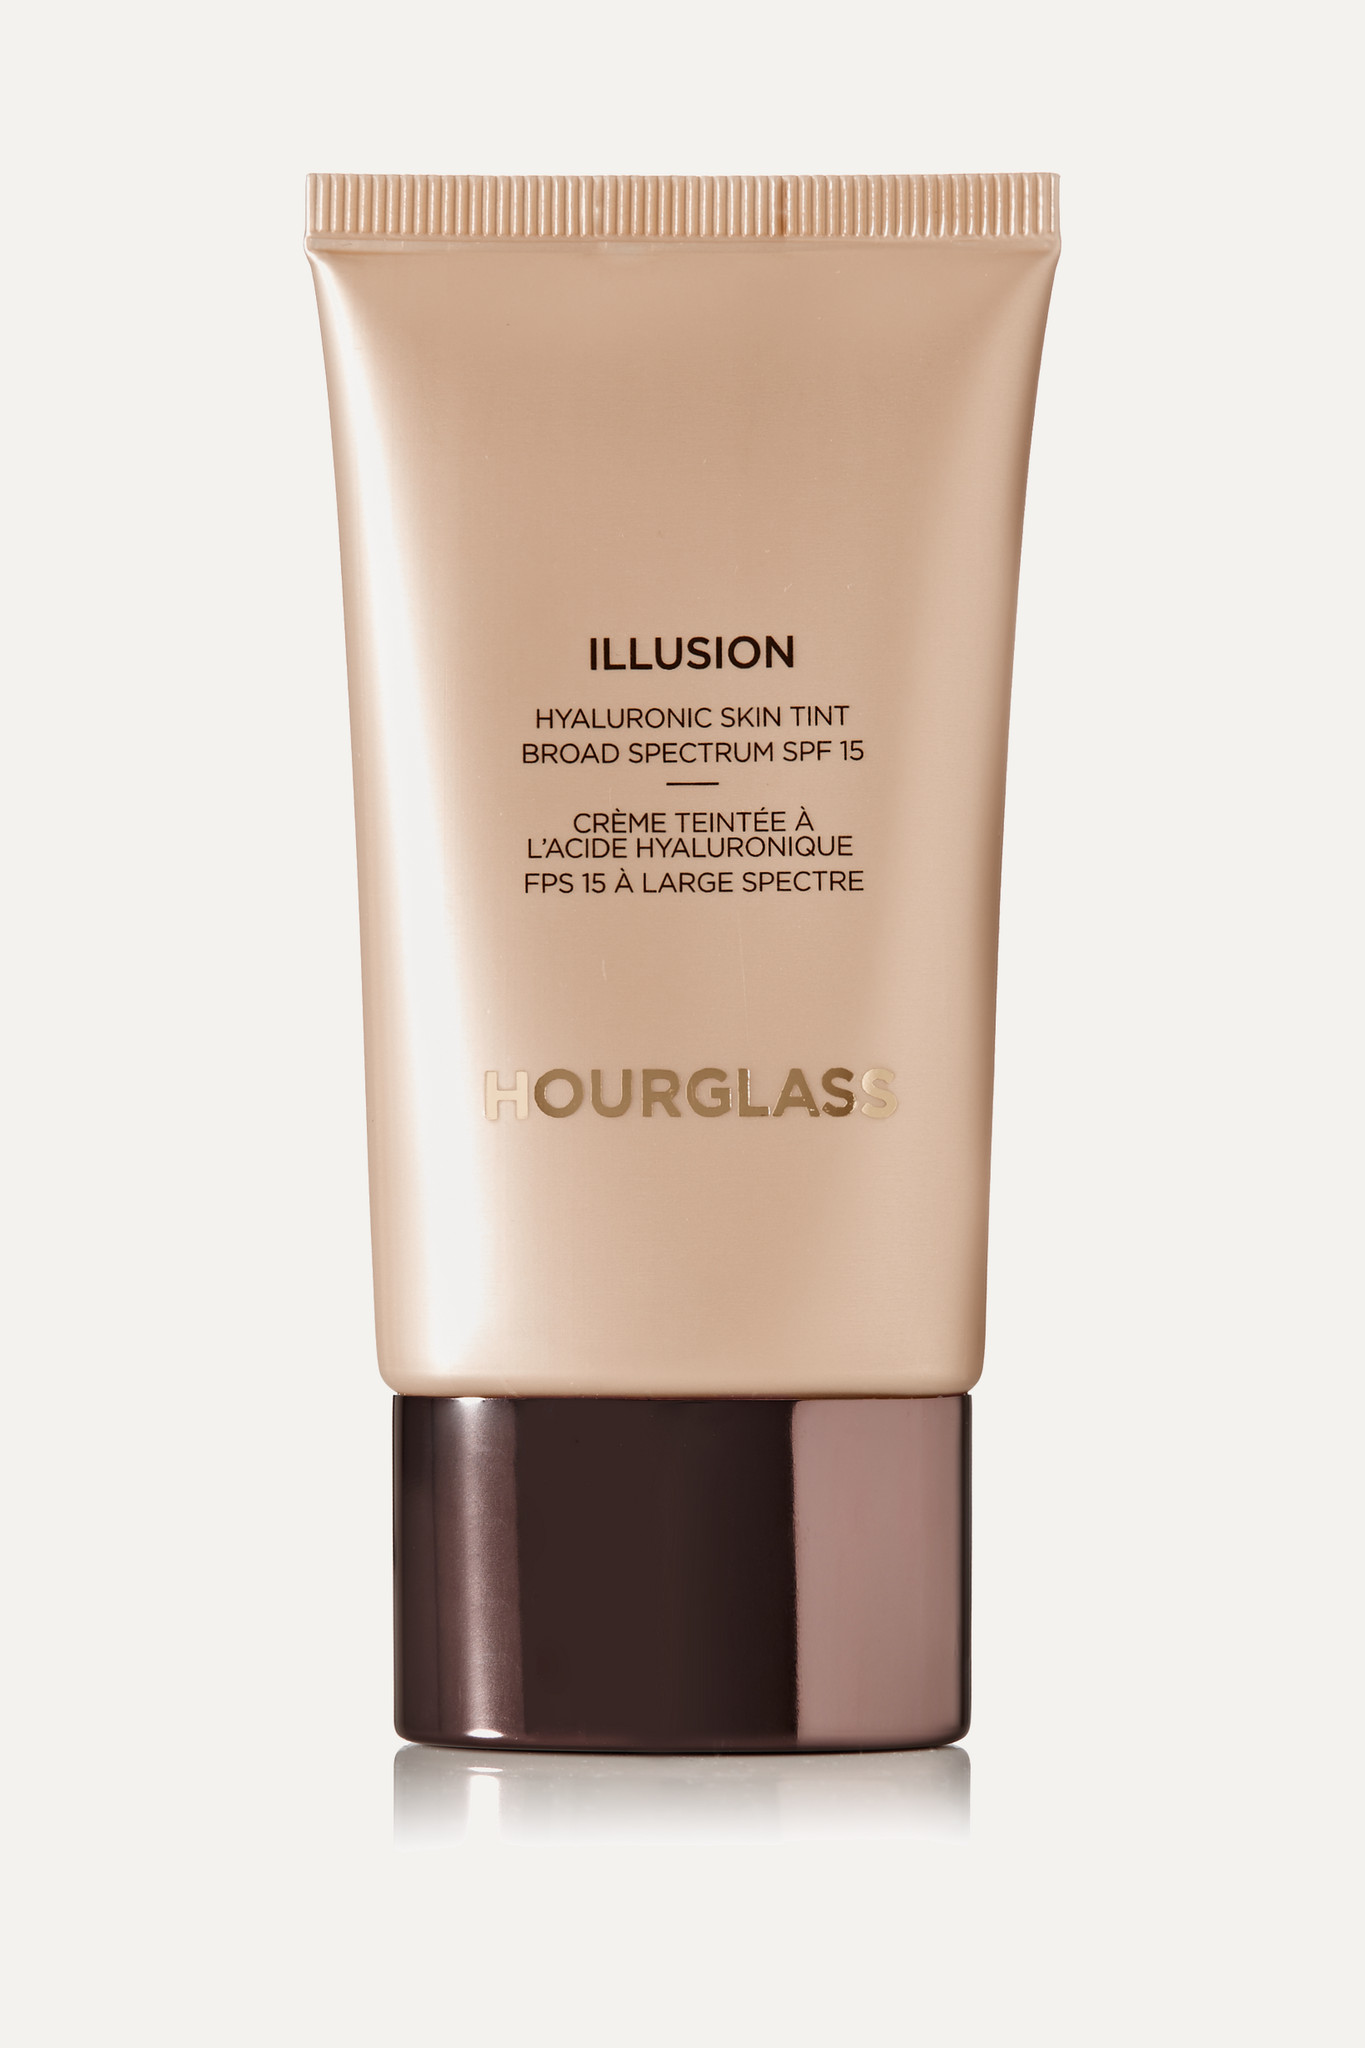 HOURGLASS - Illusion® Hyaluronic Skin Tint Spf15 - Sand, 30ml - Neutrals - one size